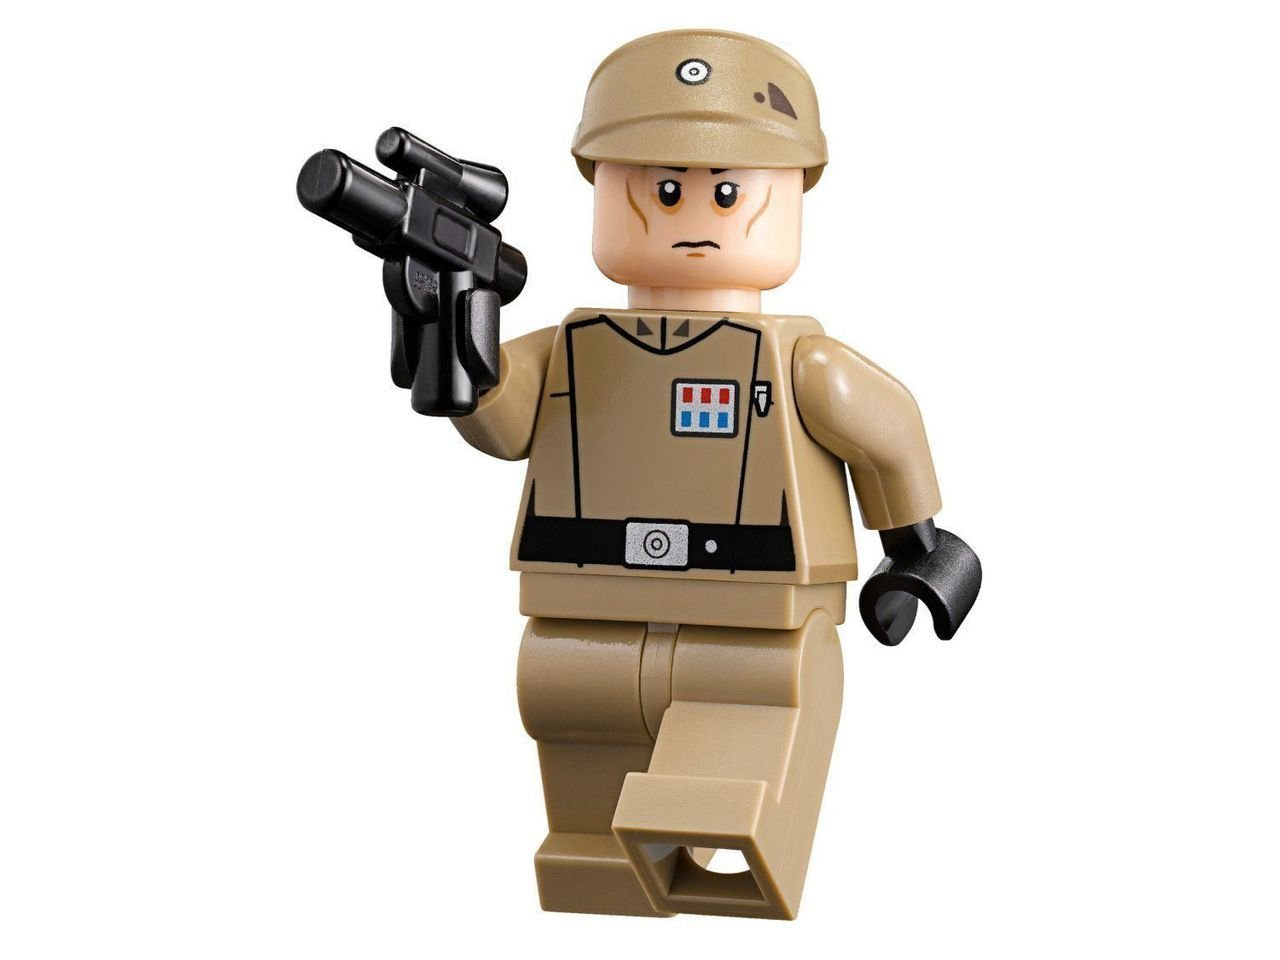 Amazoncom Lego Star Wars Imperial Officer Minifigure From Set